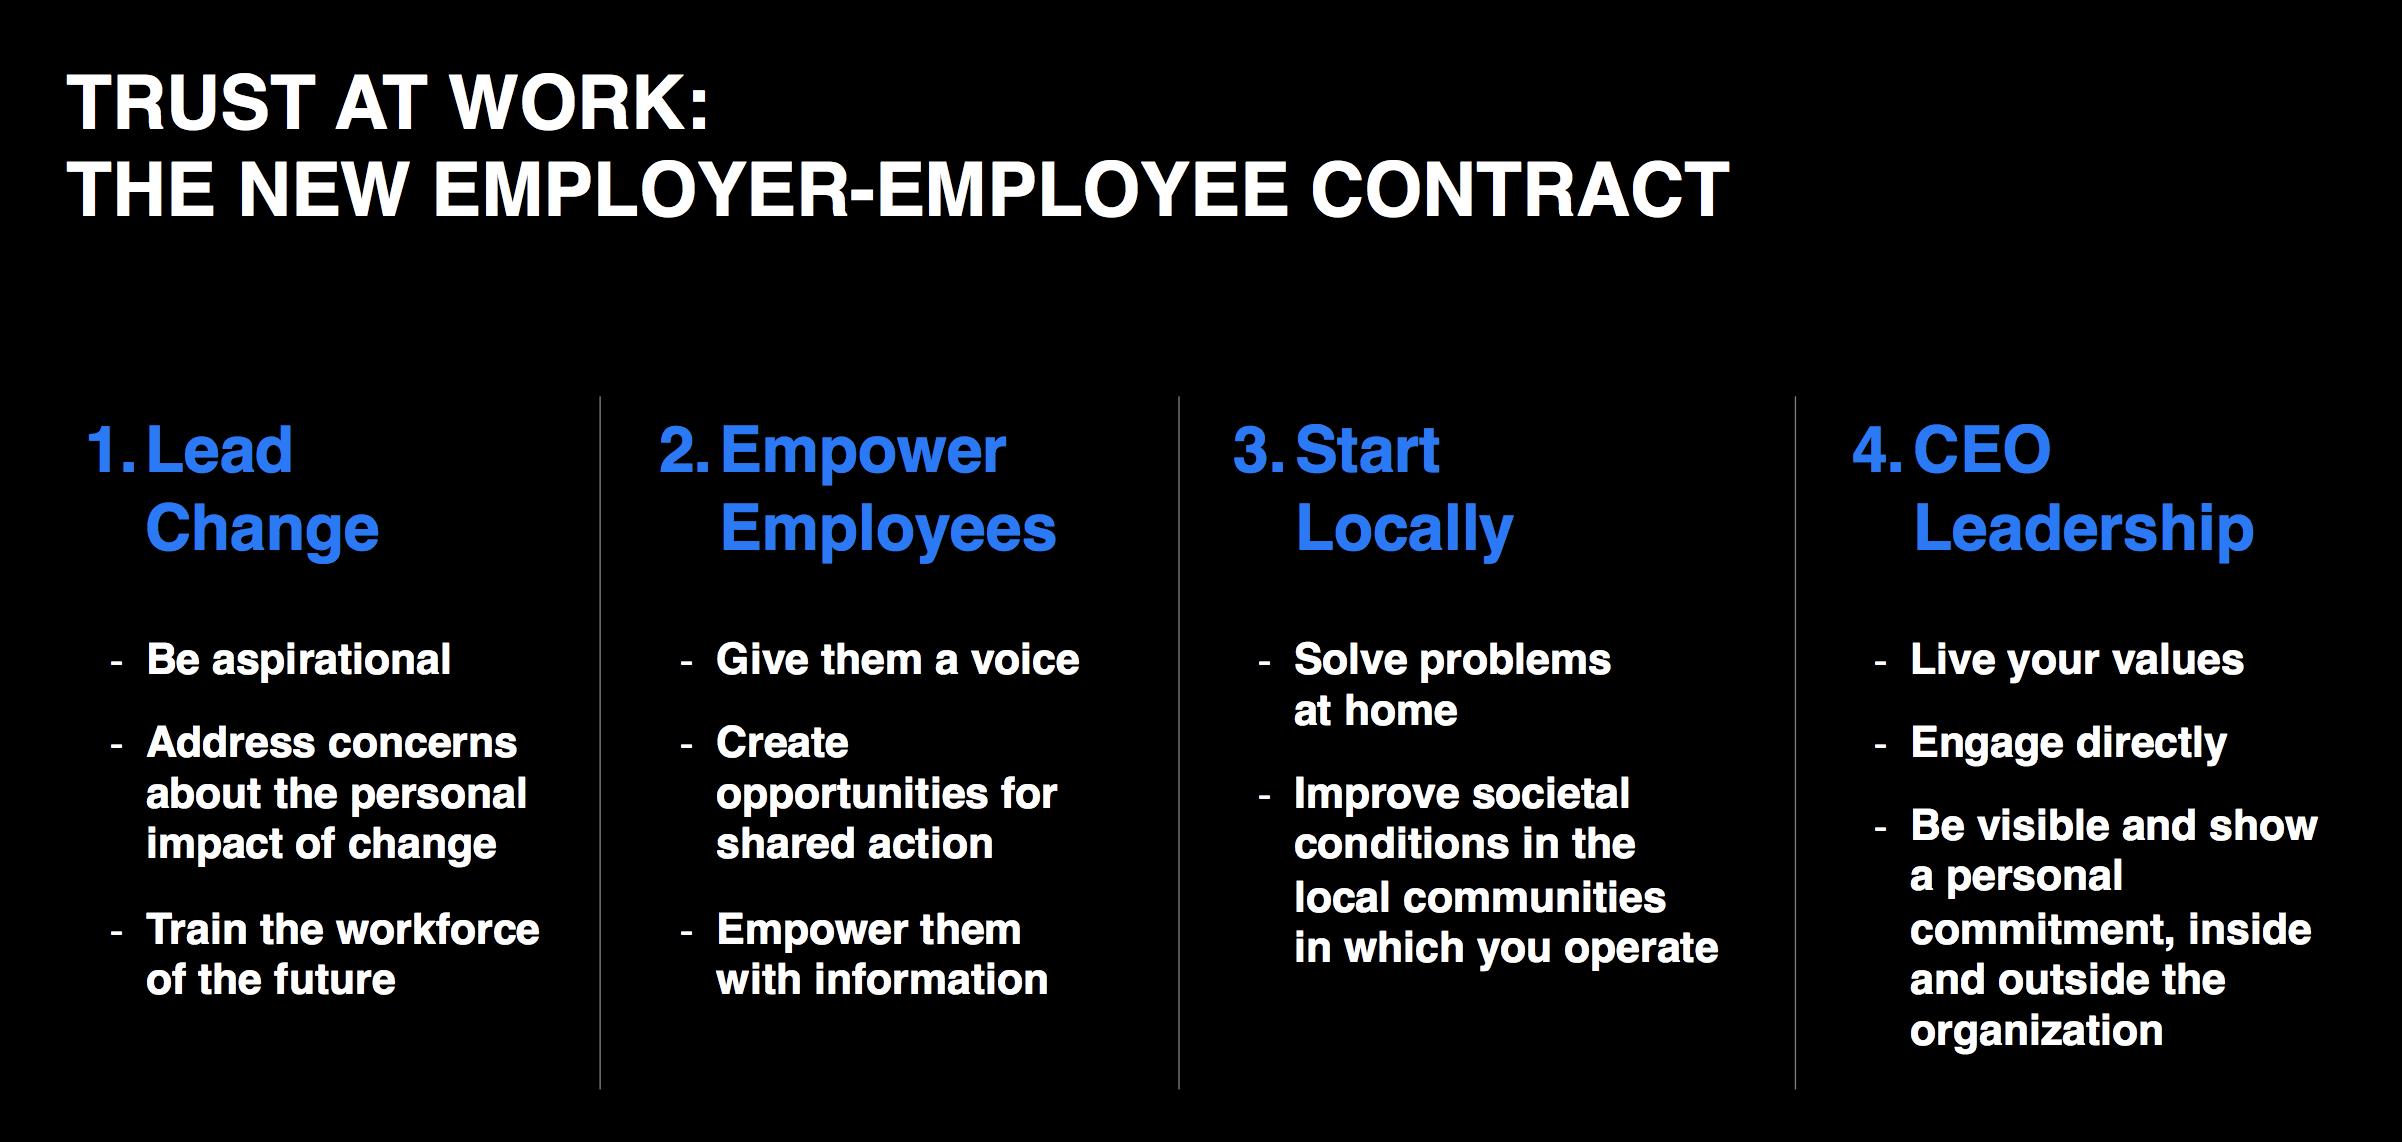 trust at work and the new contract emlpoyee-employer